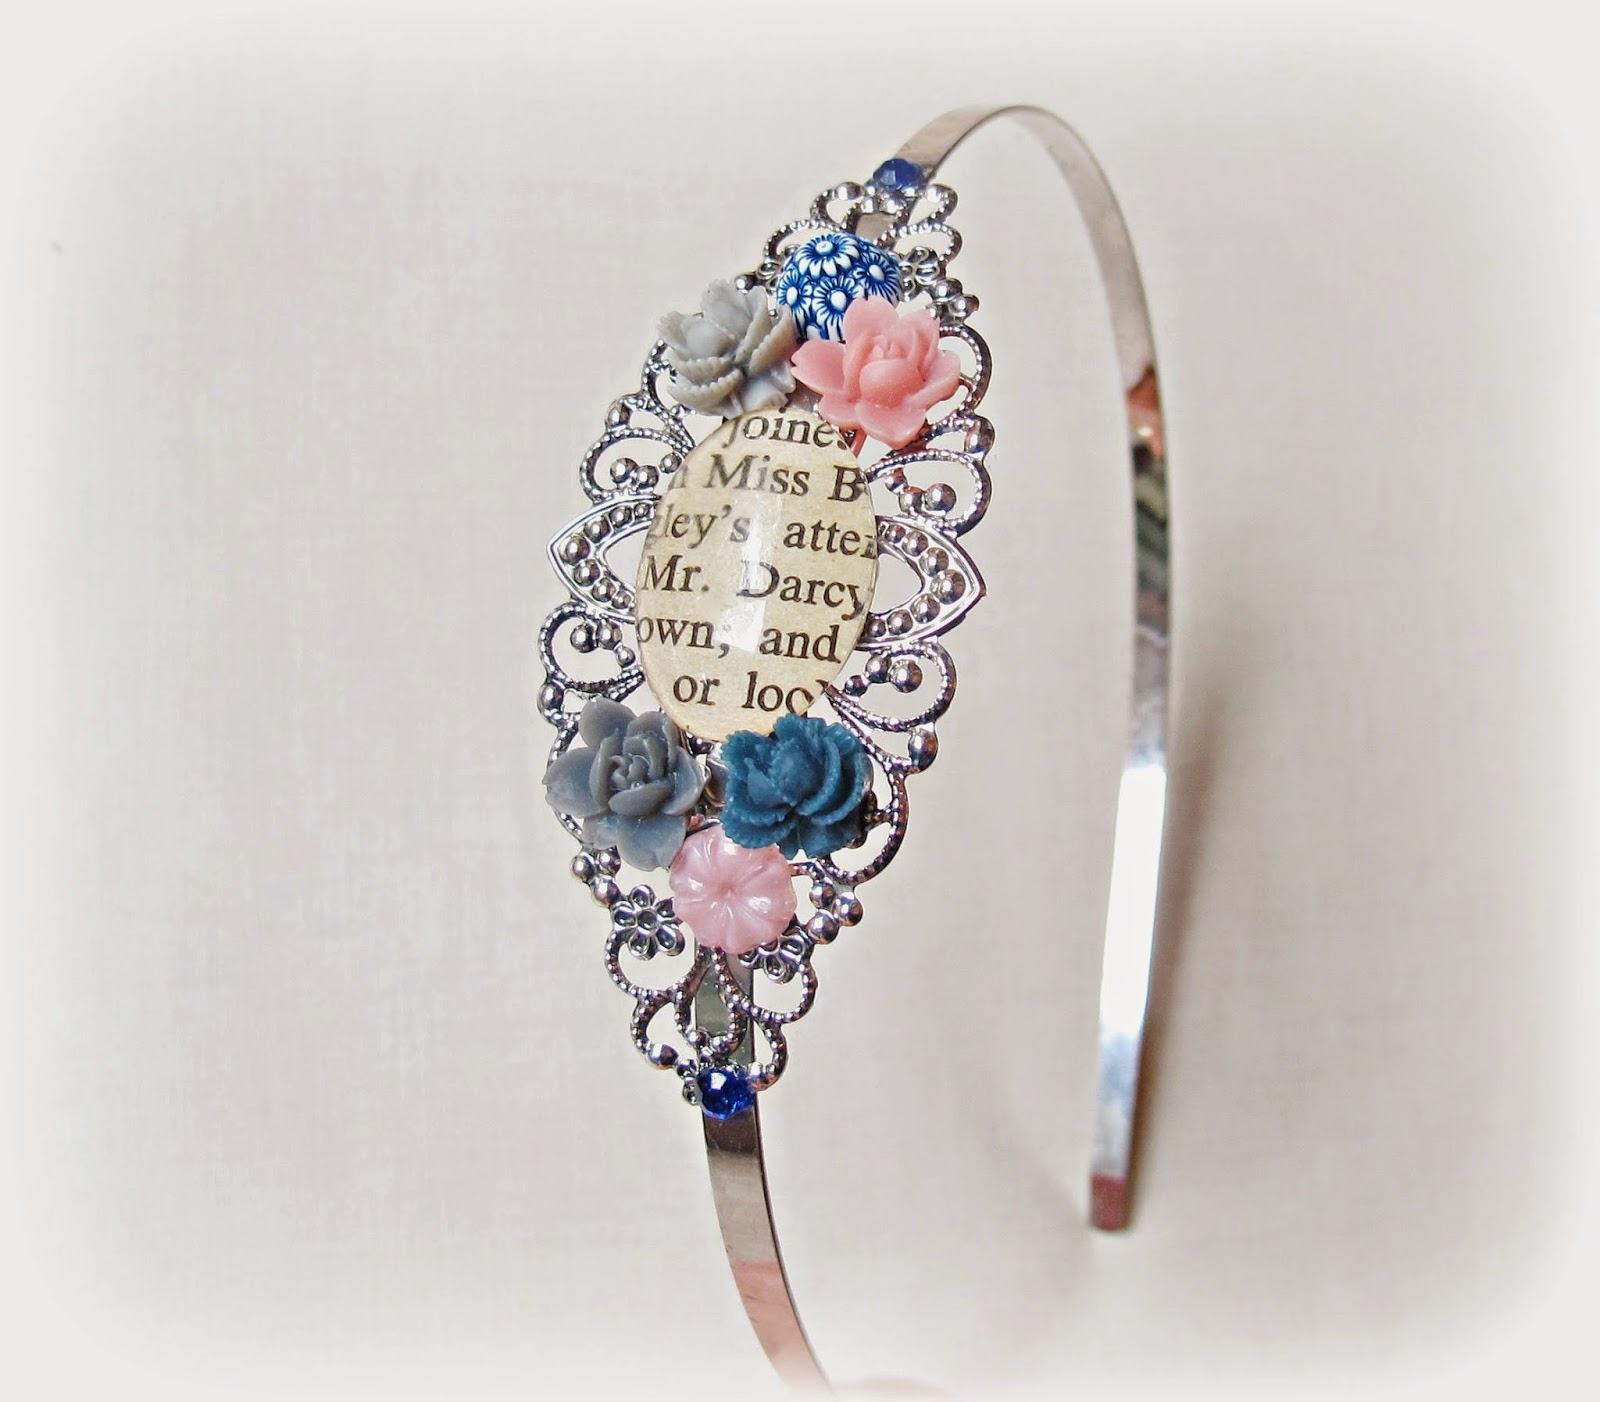 image mr darcy headband alice band two cheeky monkeys jane austen pride and prejudice silver filigree text words book page floral cabochons flowers grey gray navy pink blue